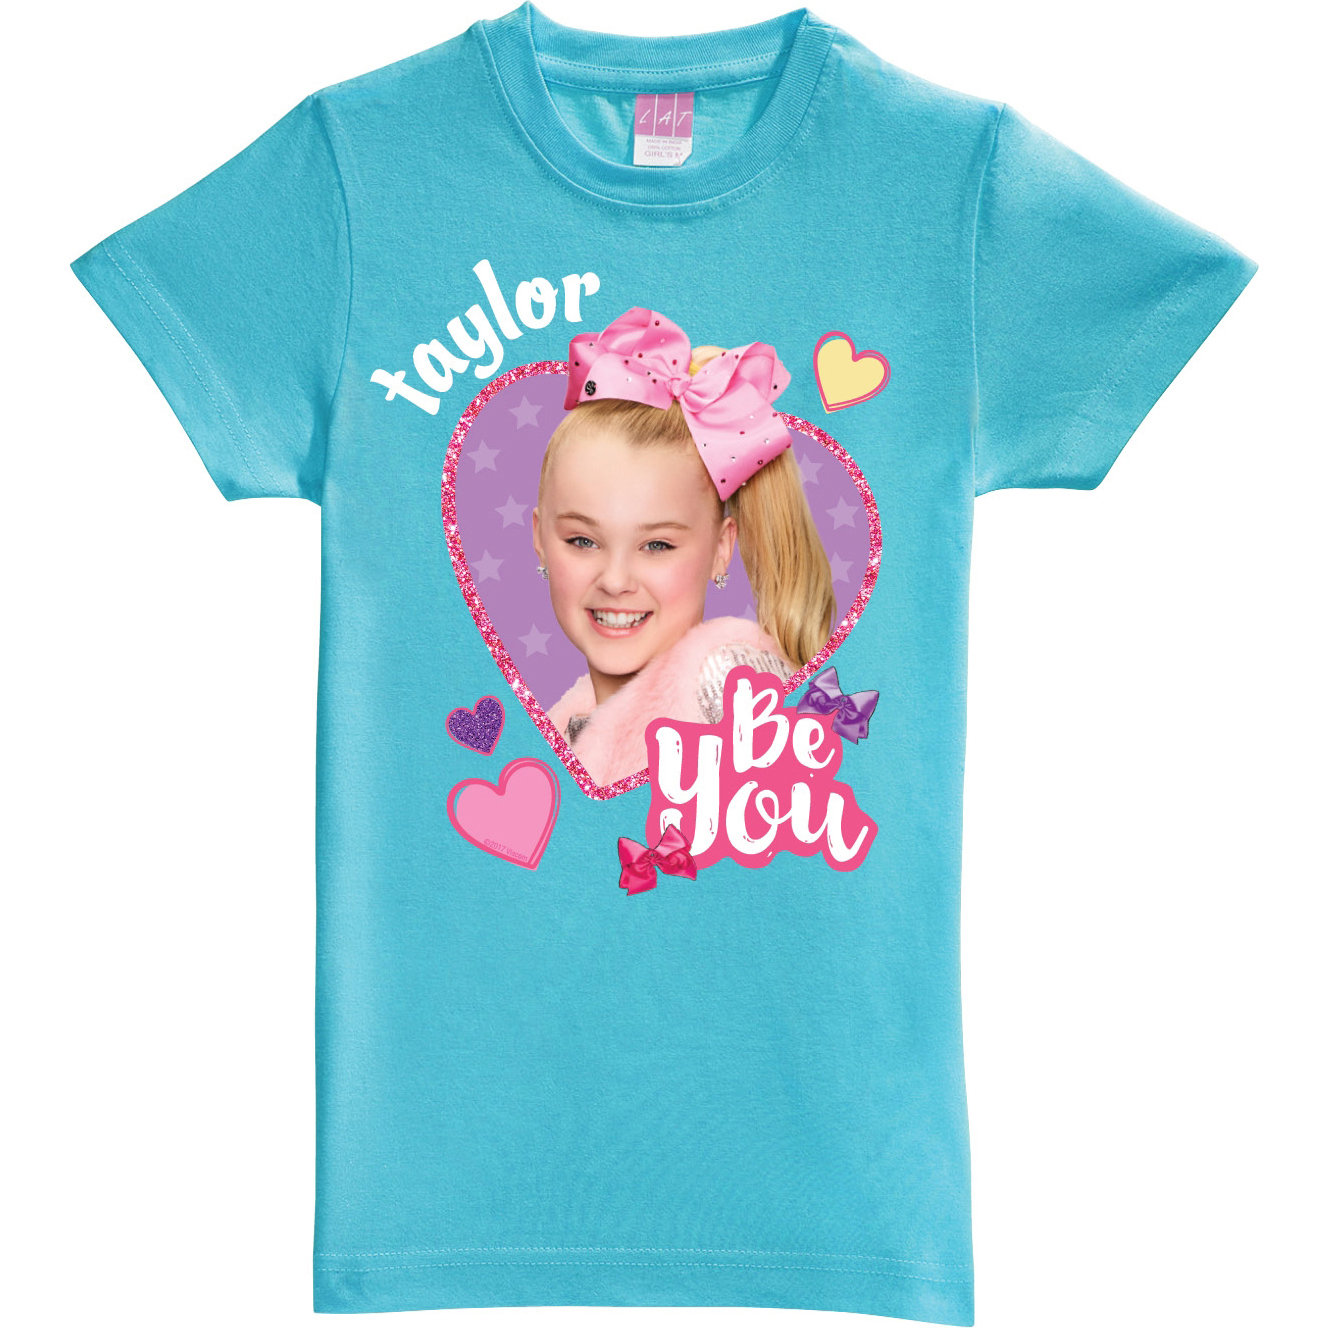 Personalized JoJo Siwa T-Shirt - Be You Aqua Youth Fitted Tee